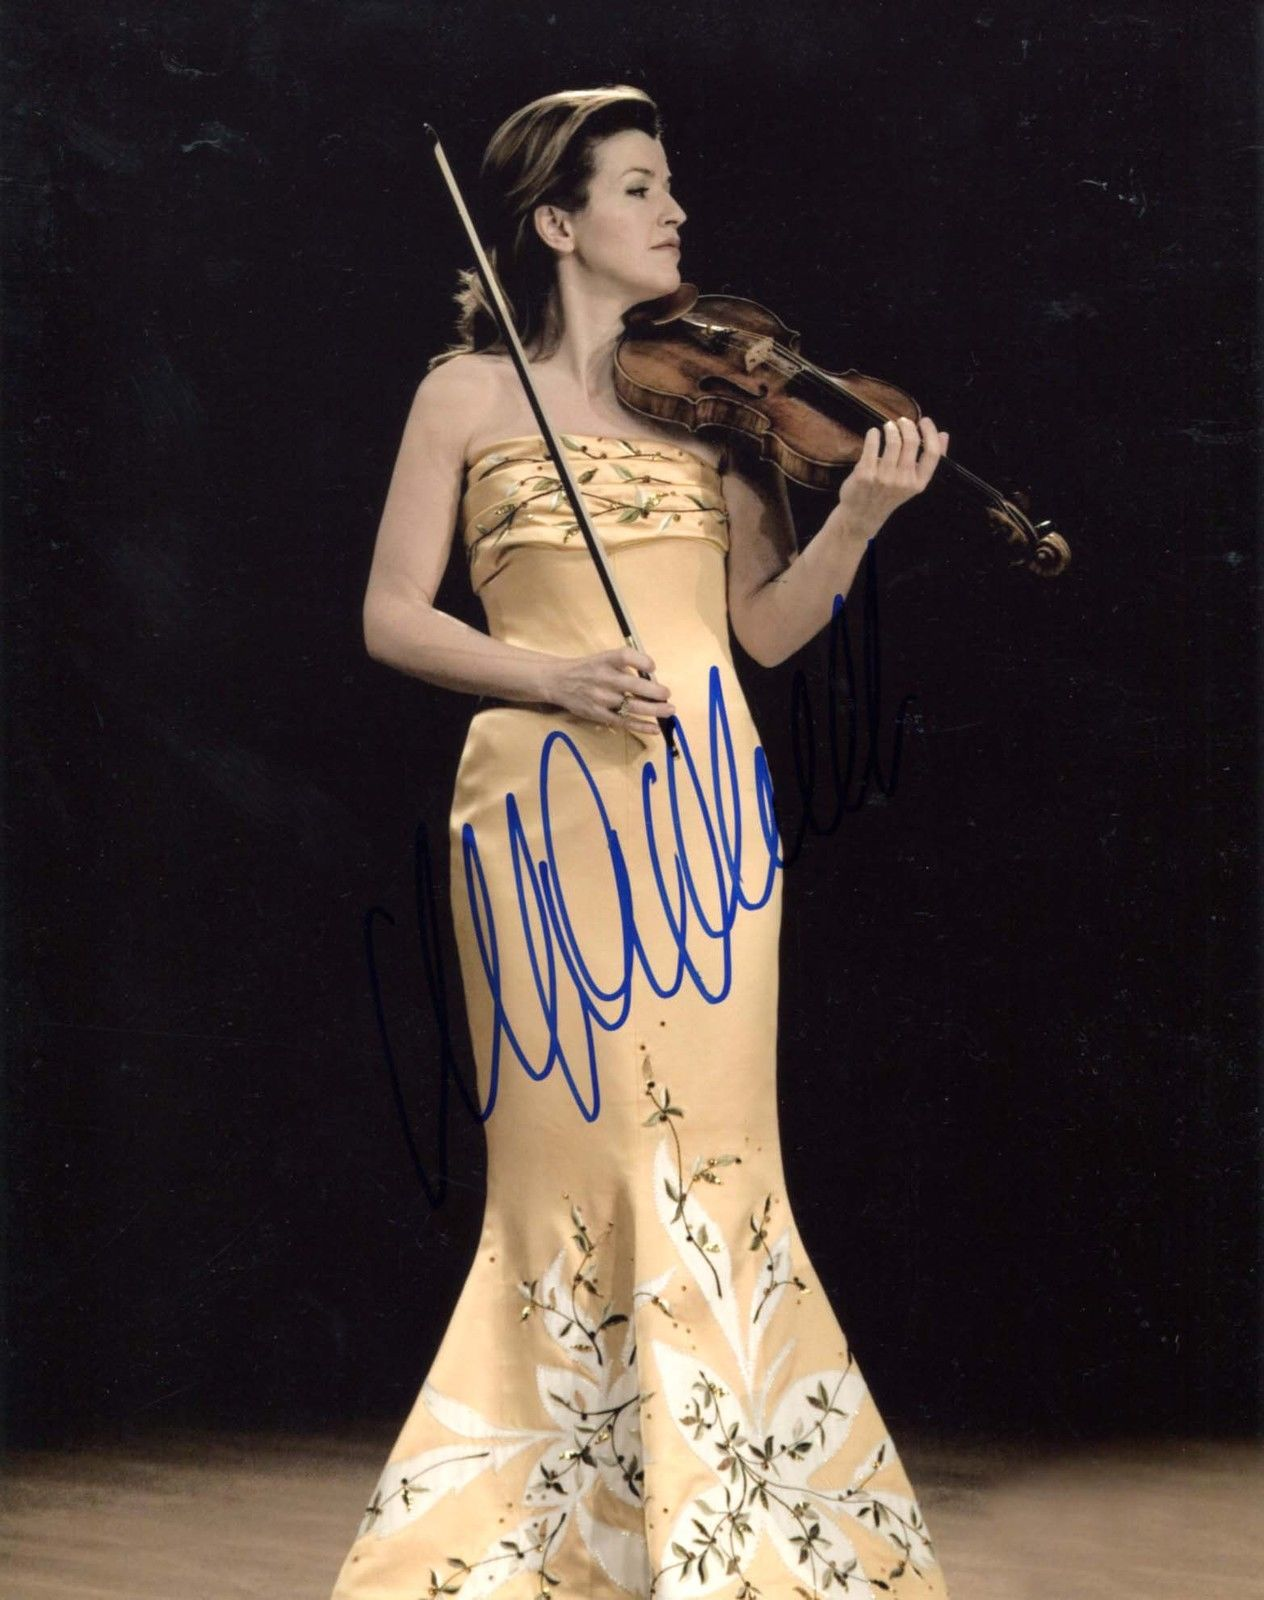 Anne Sophie Mutter Violinist Autograph Signed Photo   eBay